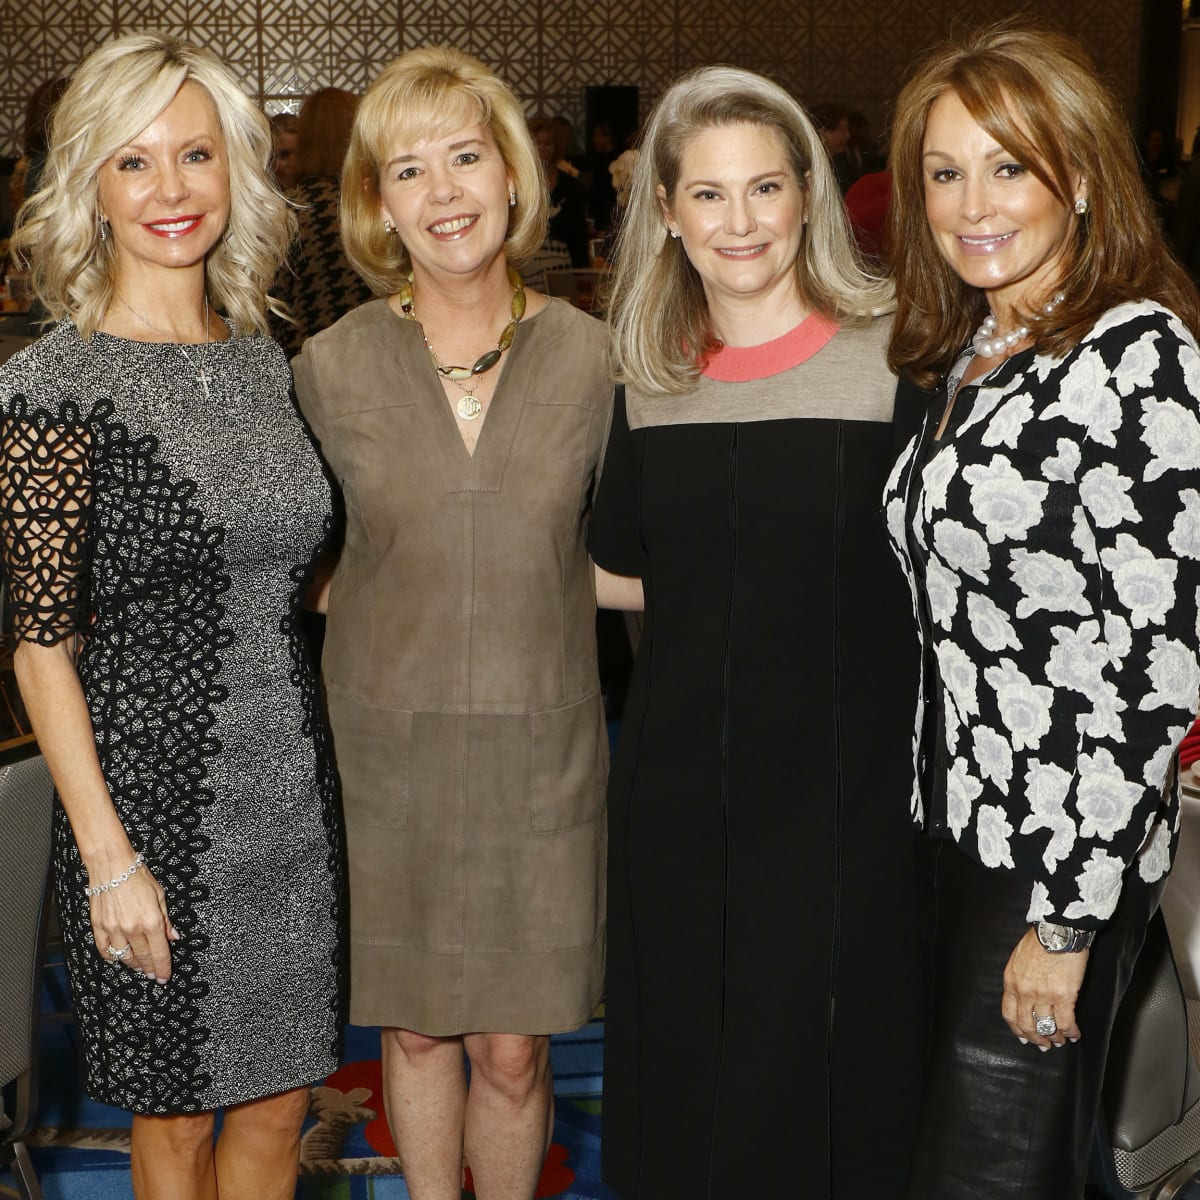 Lisa Cooley, Christie Carter, Kristina Whitcomb, Claire Emanuelson